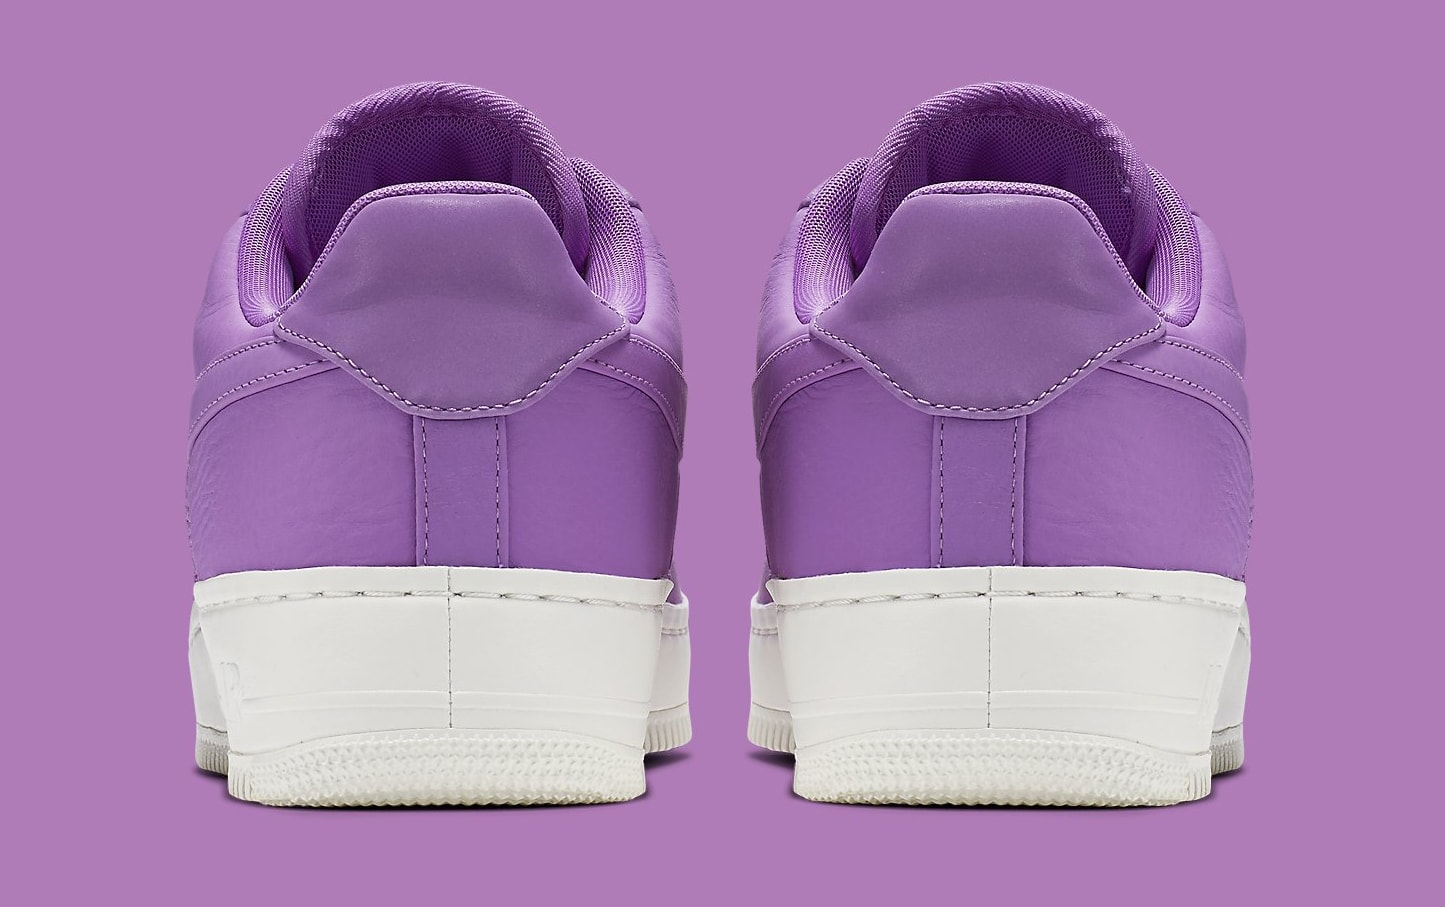 Nike Air Force 1 Low Purple Stardust 905618-500 Heel